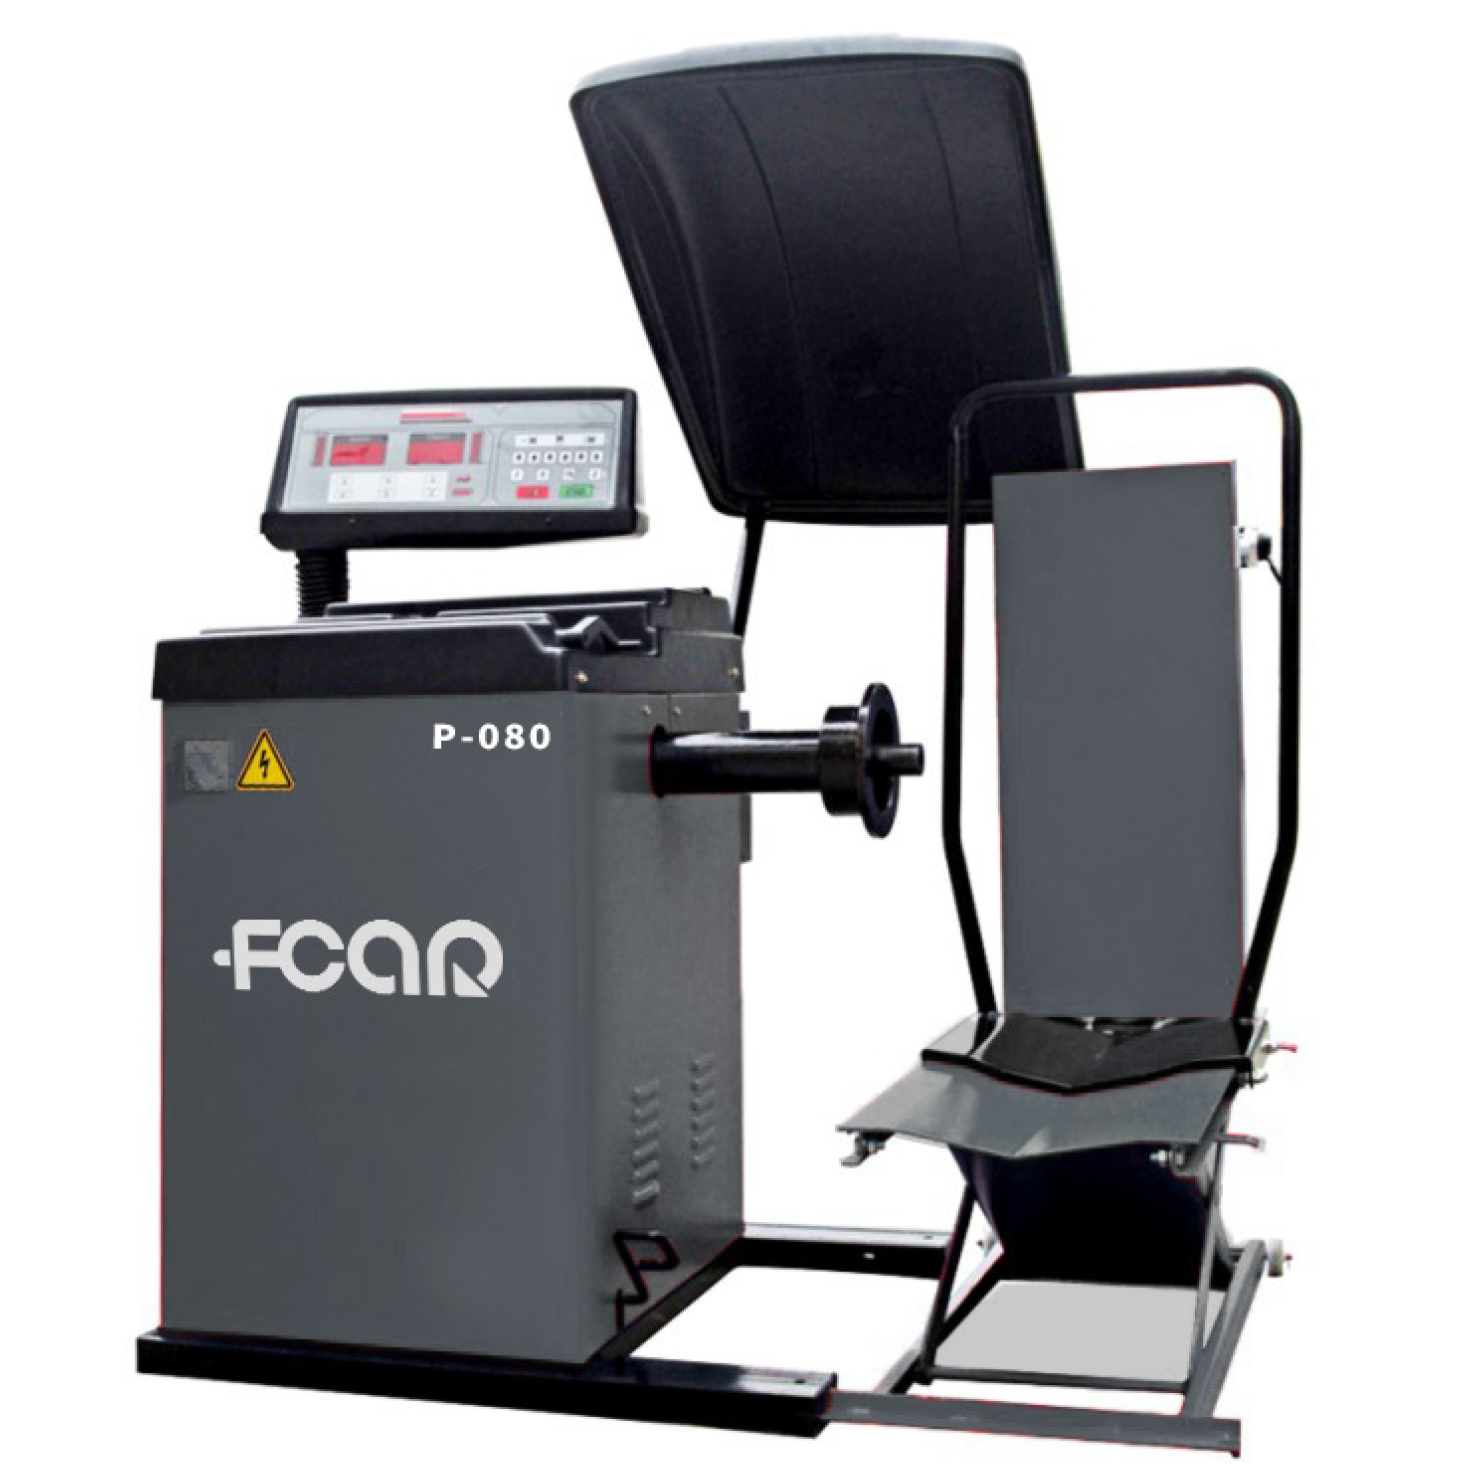 FCAR P-080 wheel balancer wheel alignment machine for truck, bus, car and motorcycle wheels with breaking pedal